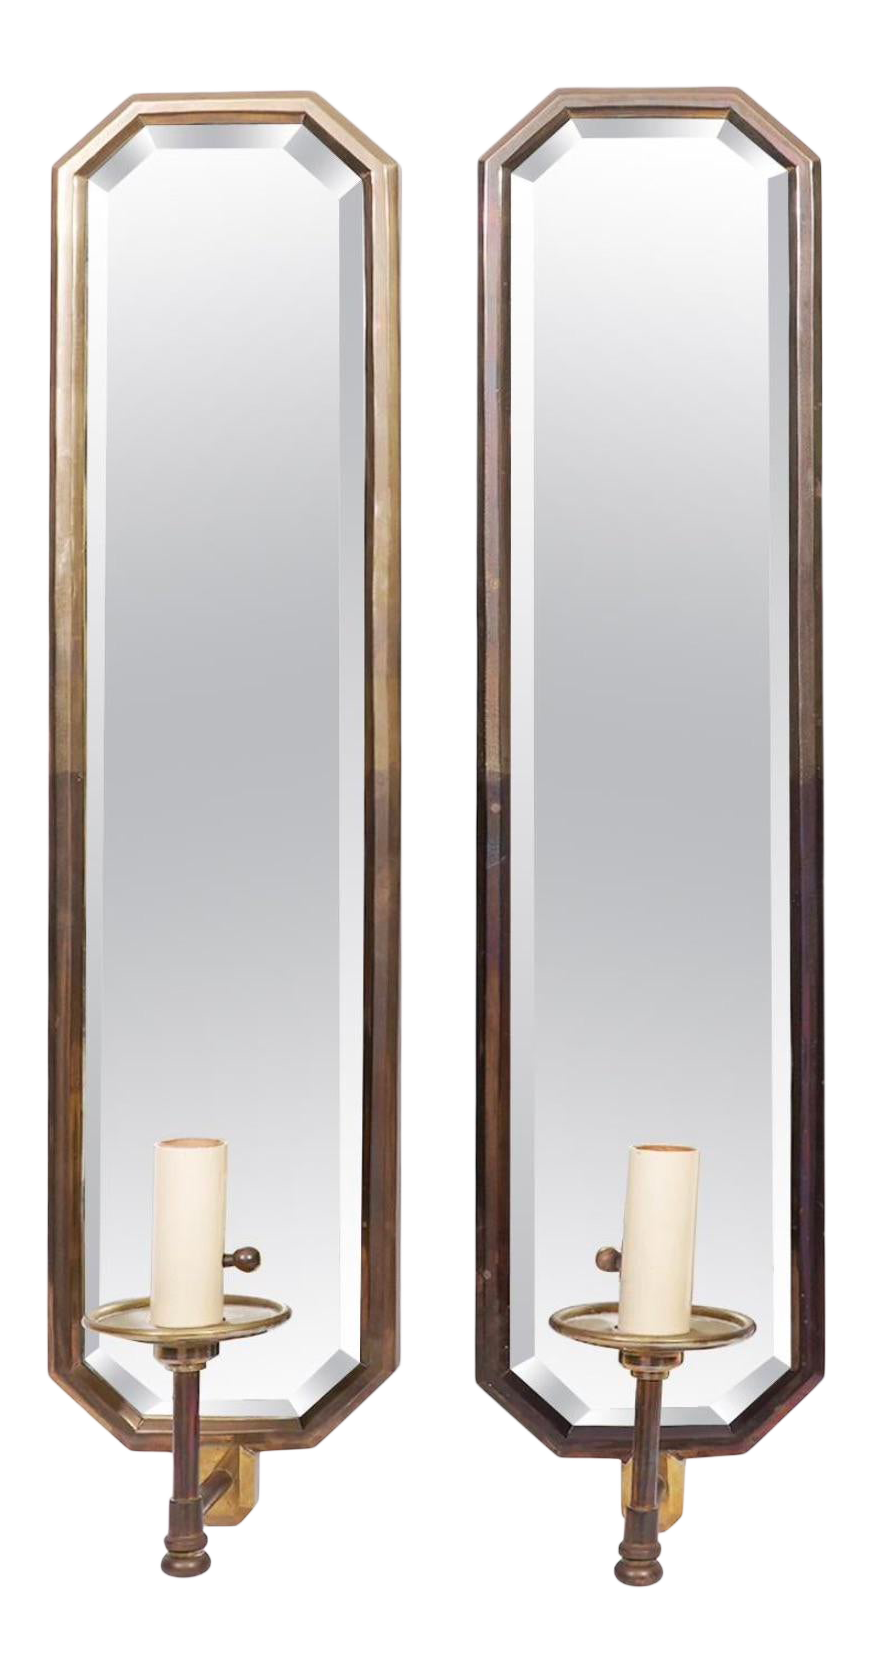 Solid brass mirrored electric wall sconce